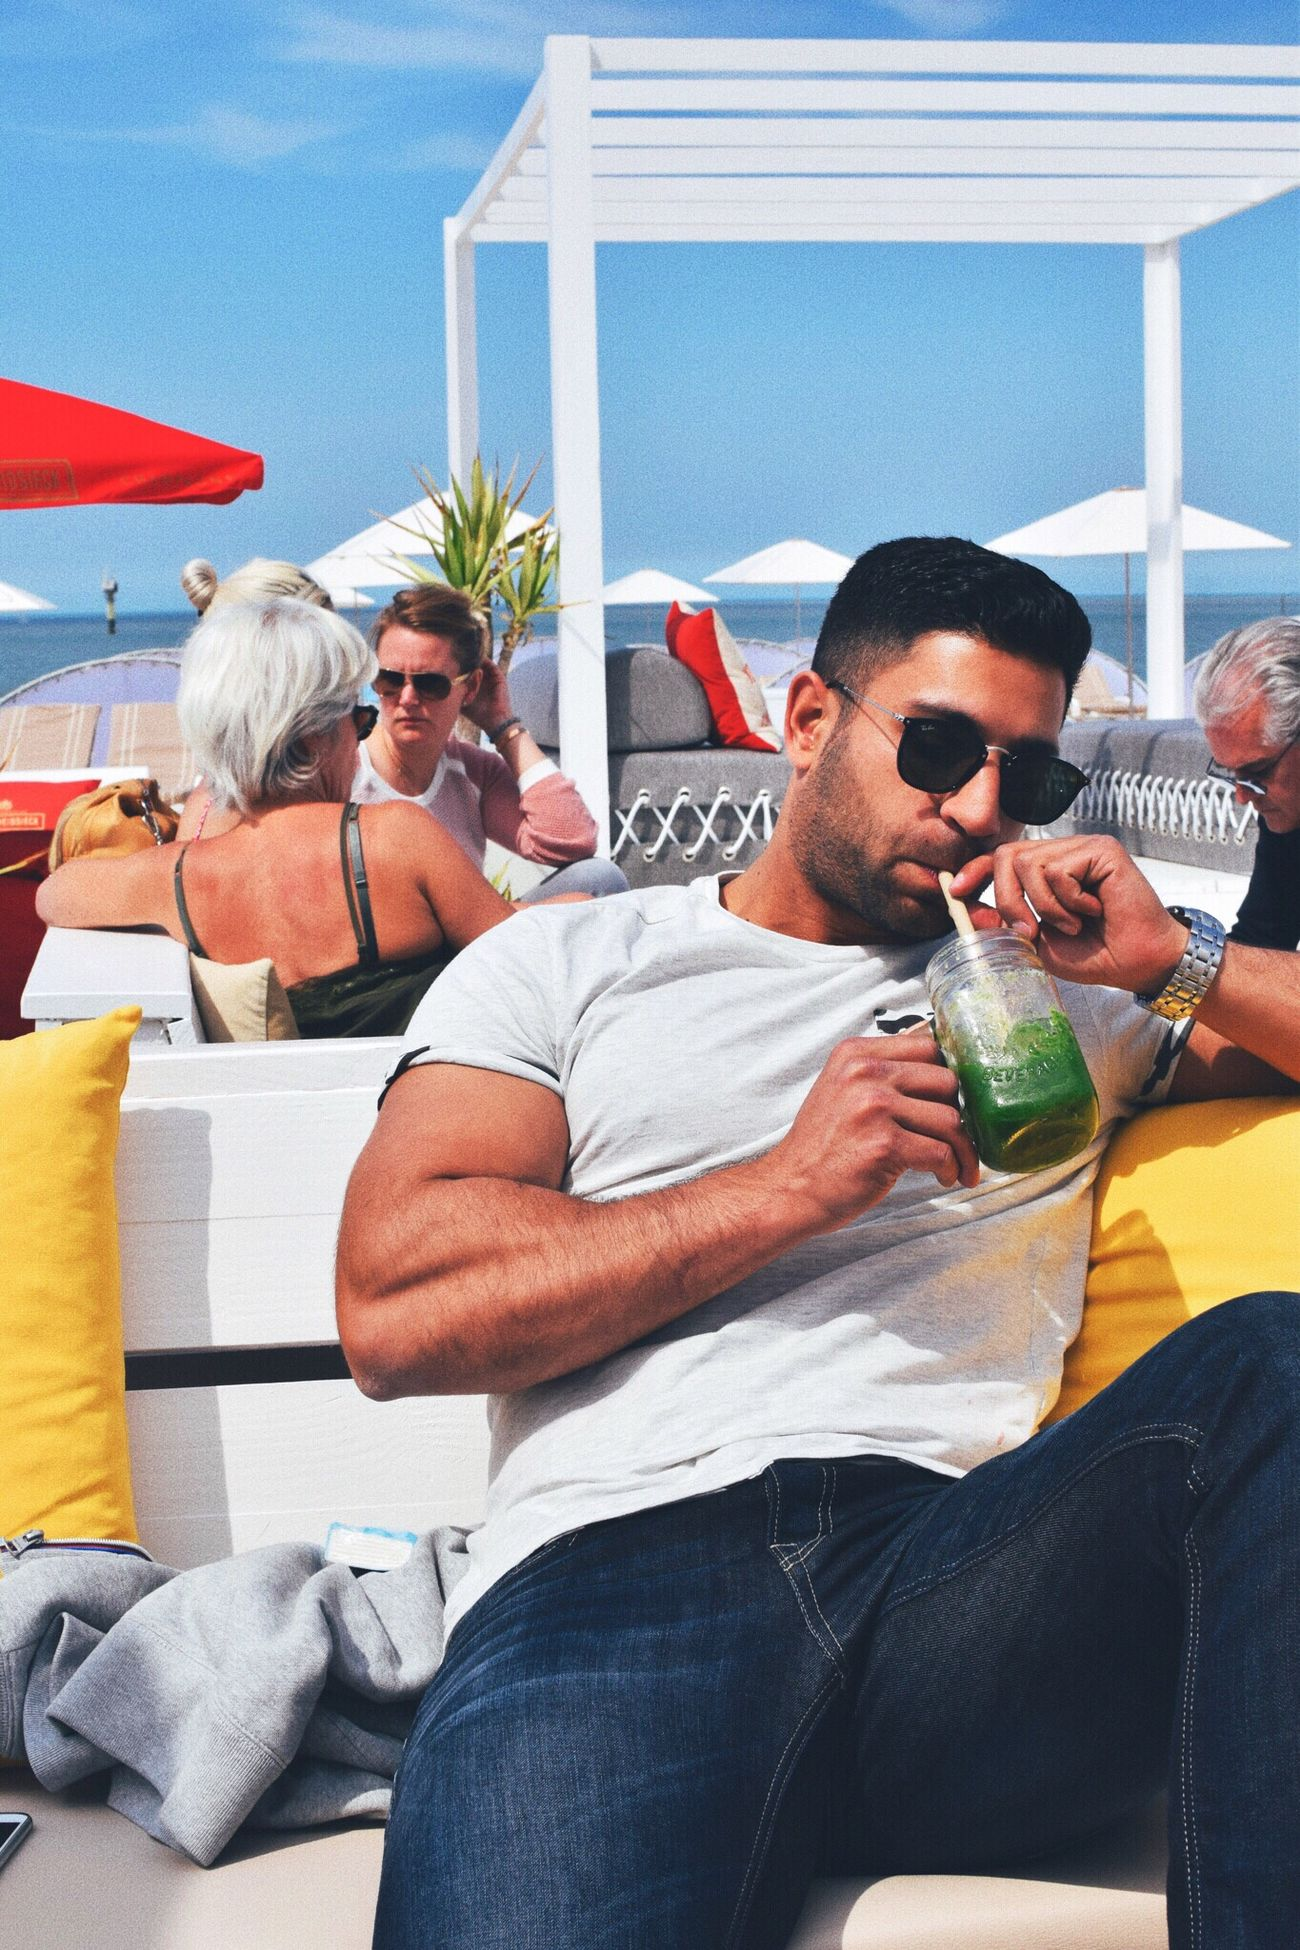 Live For The Story beach drinks Sunglasses Men Sitting Vacations Day Outdoors Adult Adults Only People Young Adult